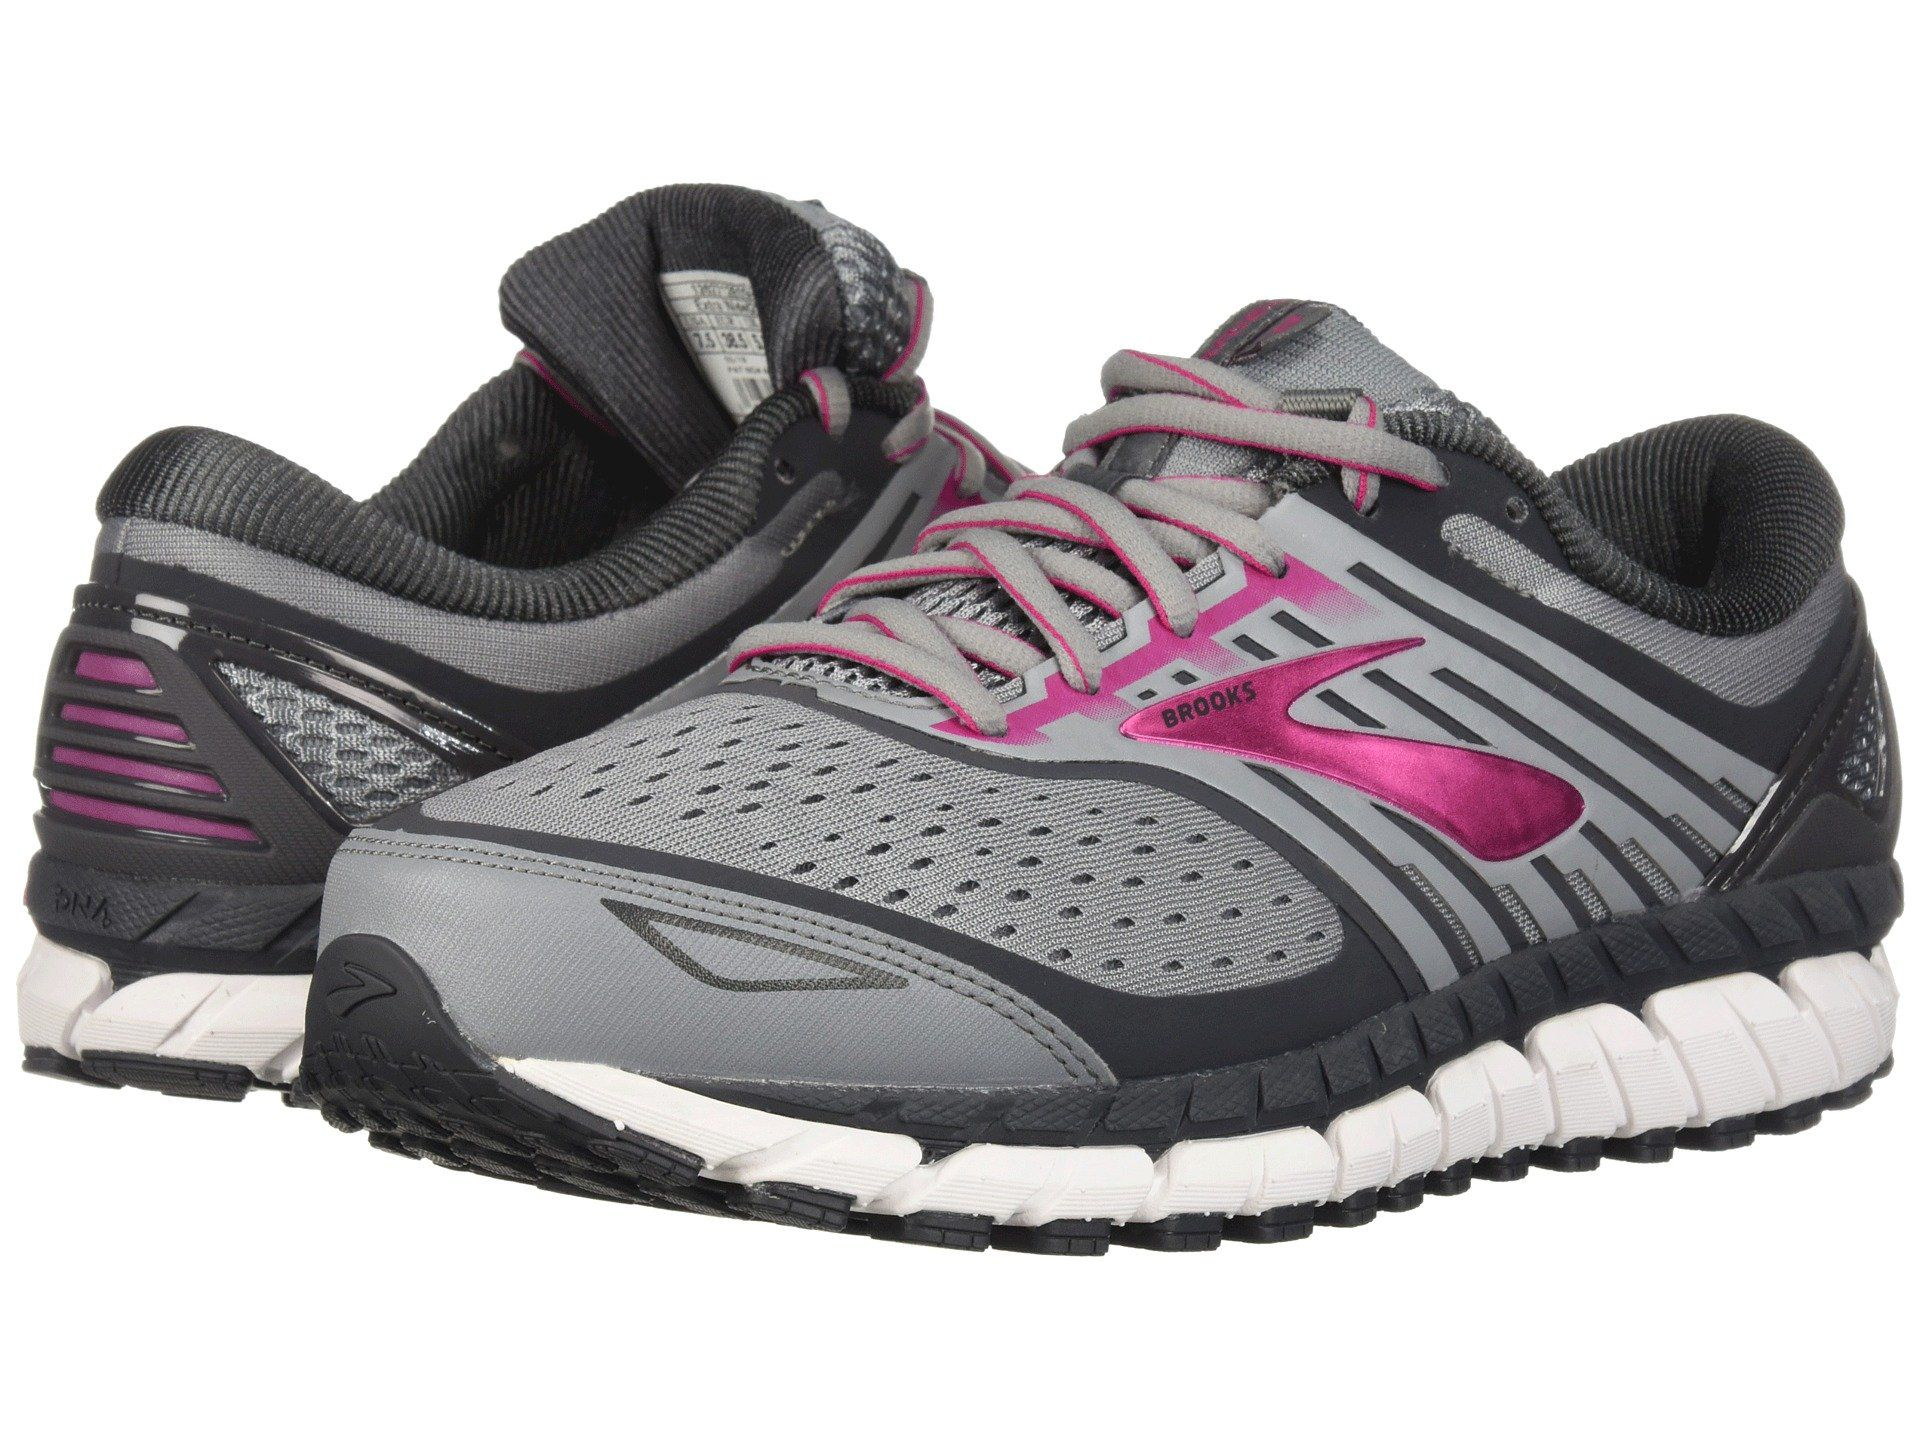 75ee6e2f89aeb0 The 9 Best Walking Shoes for Flat Feet of 2019